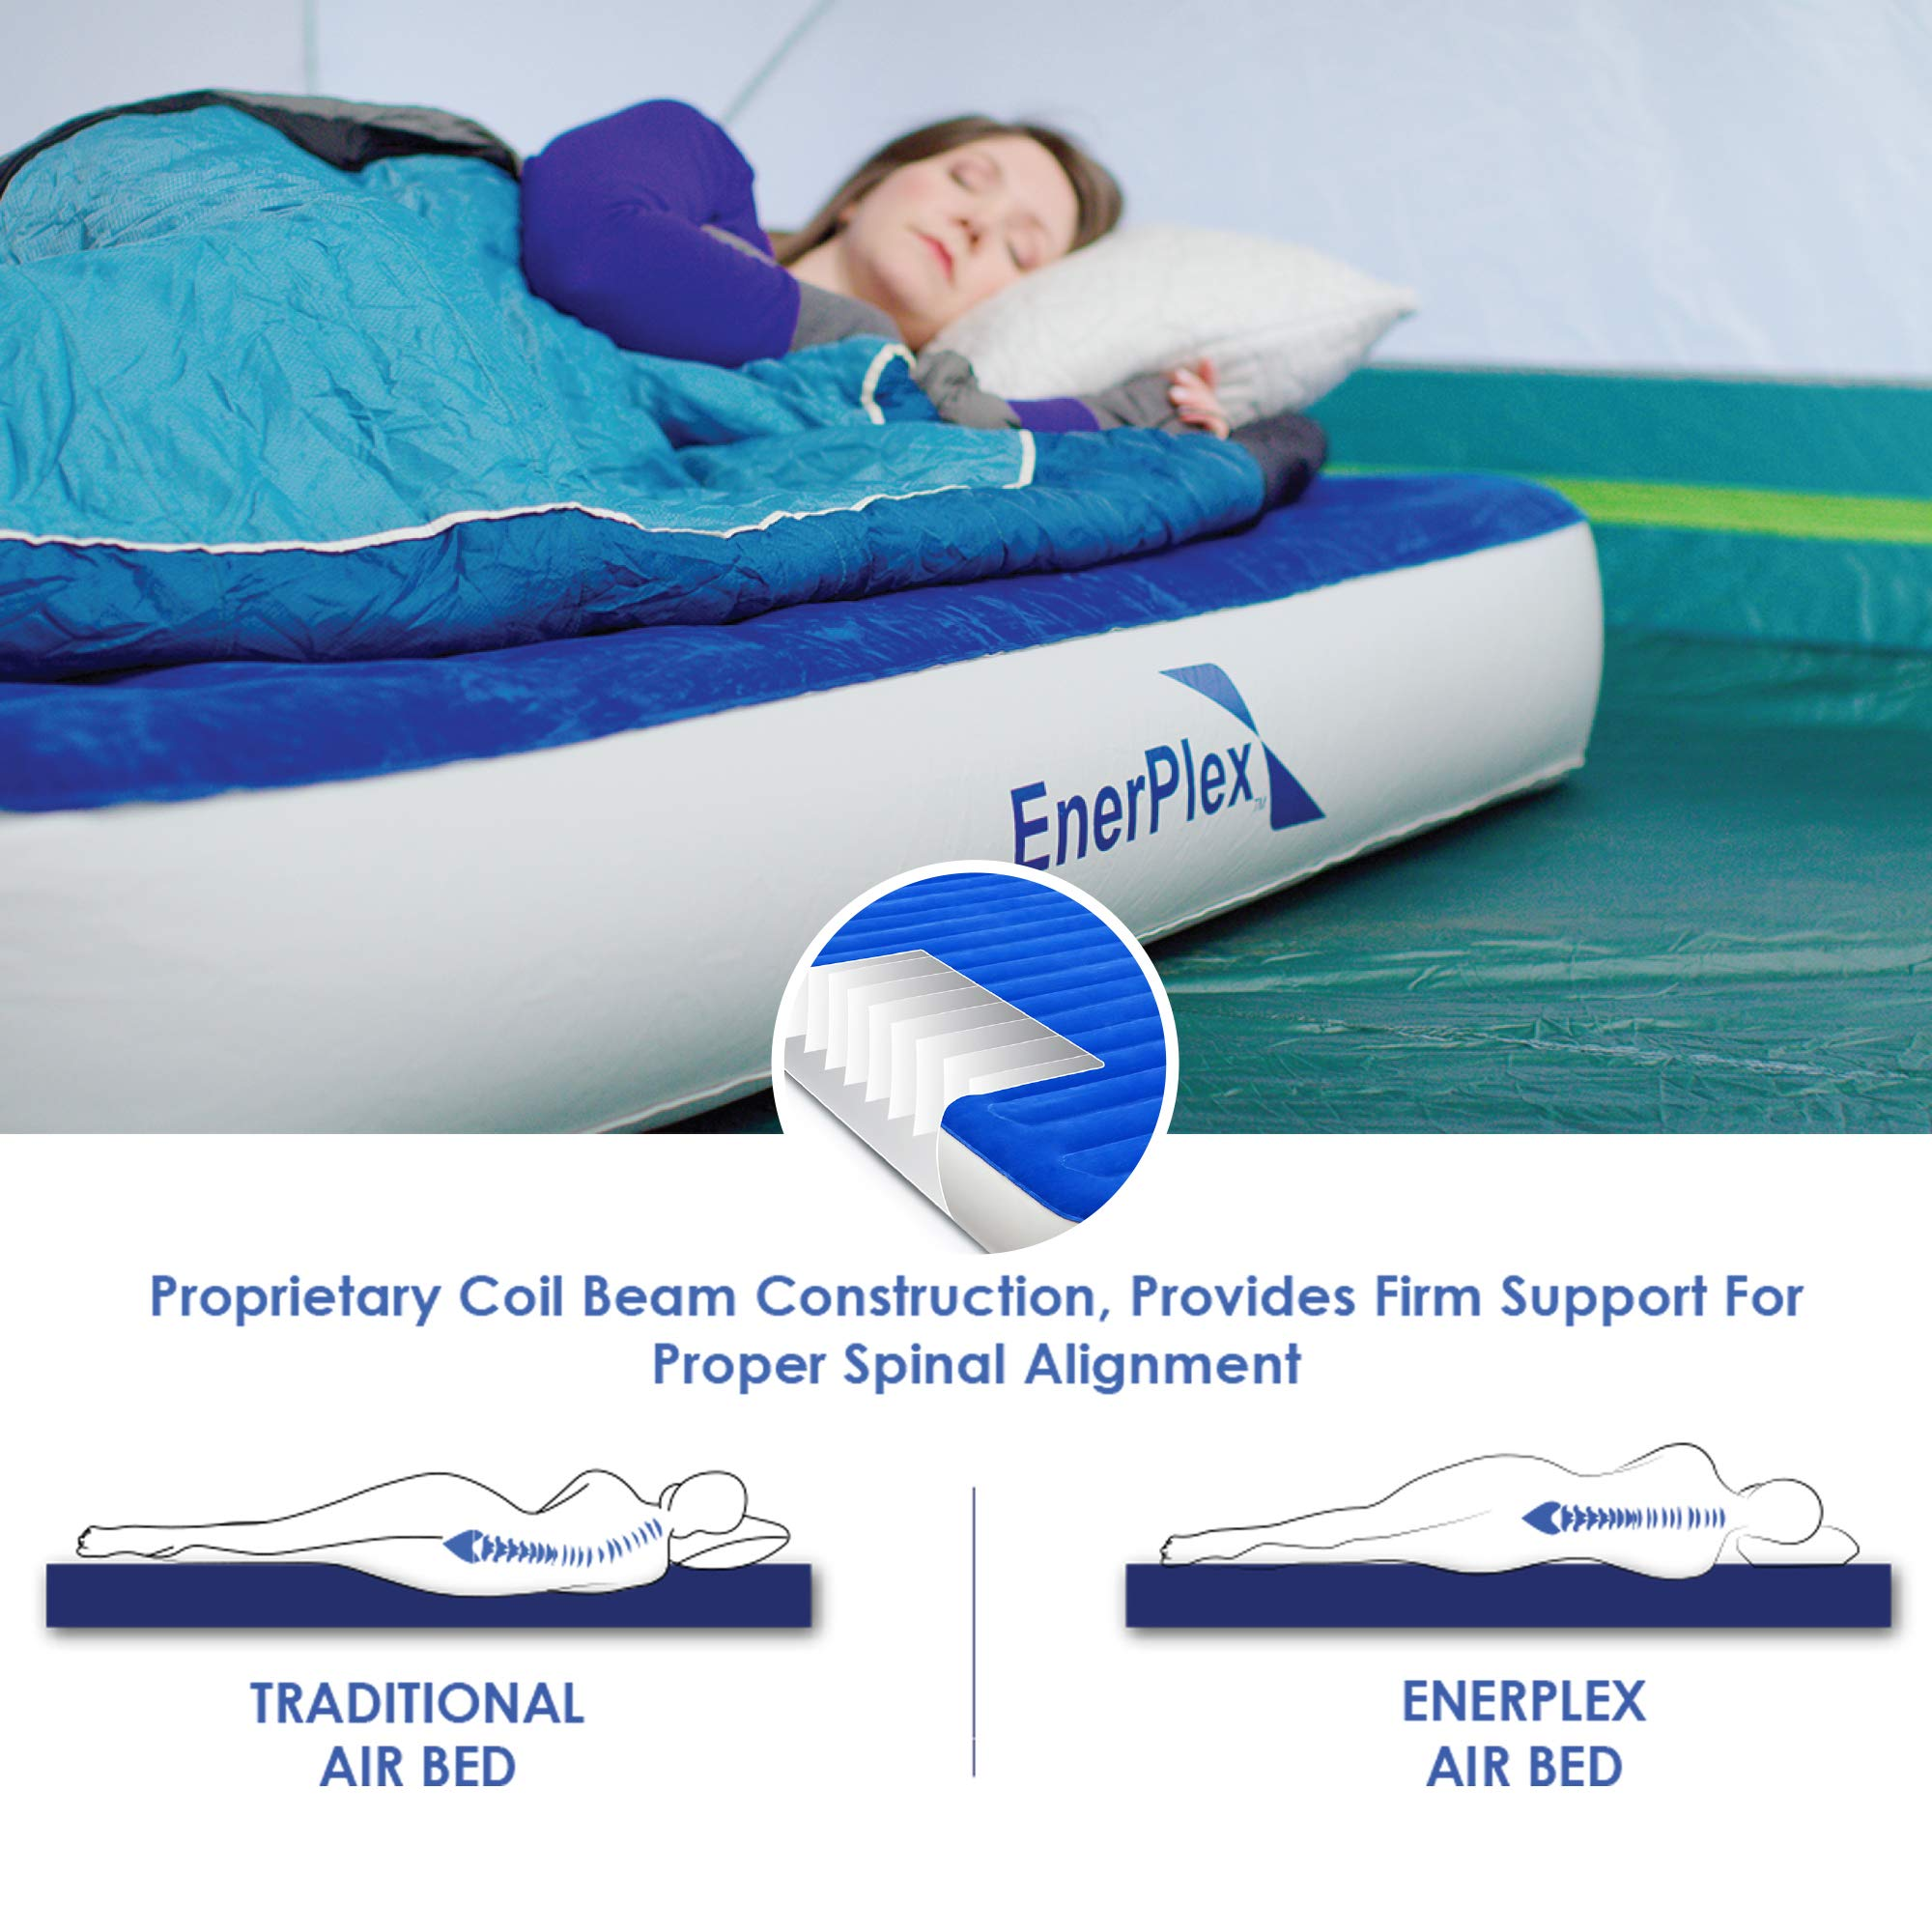 EnerPlex 2019 Camping Luxury Queen Size Air Mattress Camping Queen Airbed with High Speed Wireless Pump Single High Inflatable Blow Up Bed for Home Camping Travel 2-Year Warranty by EnerPlex (Image #4)